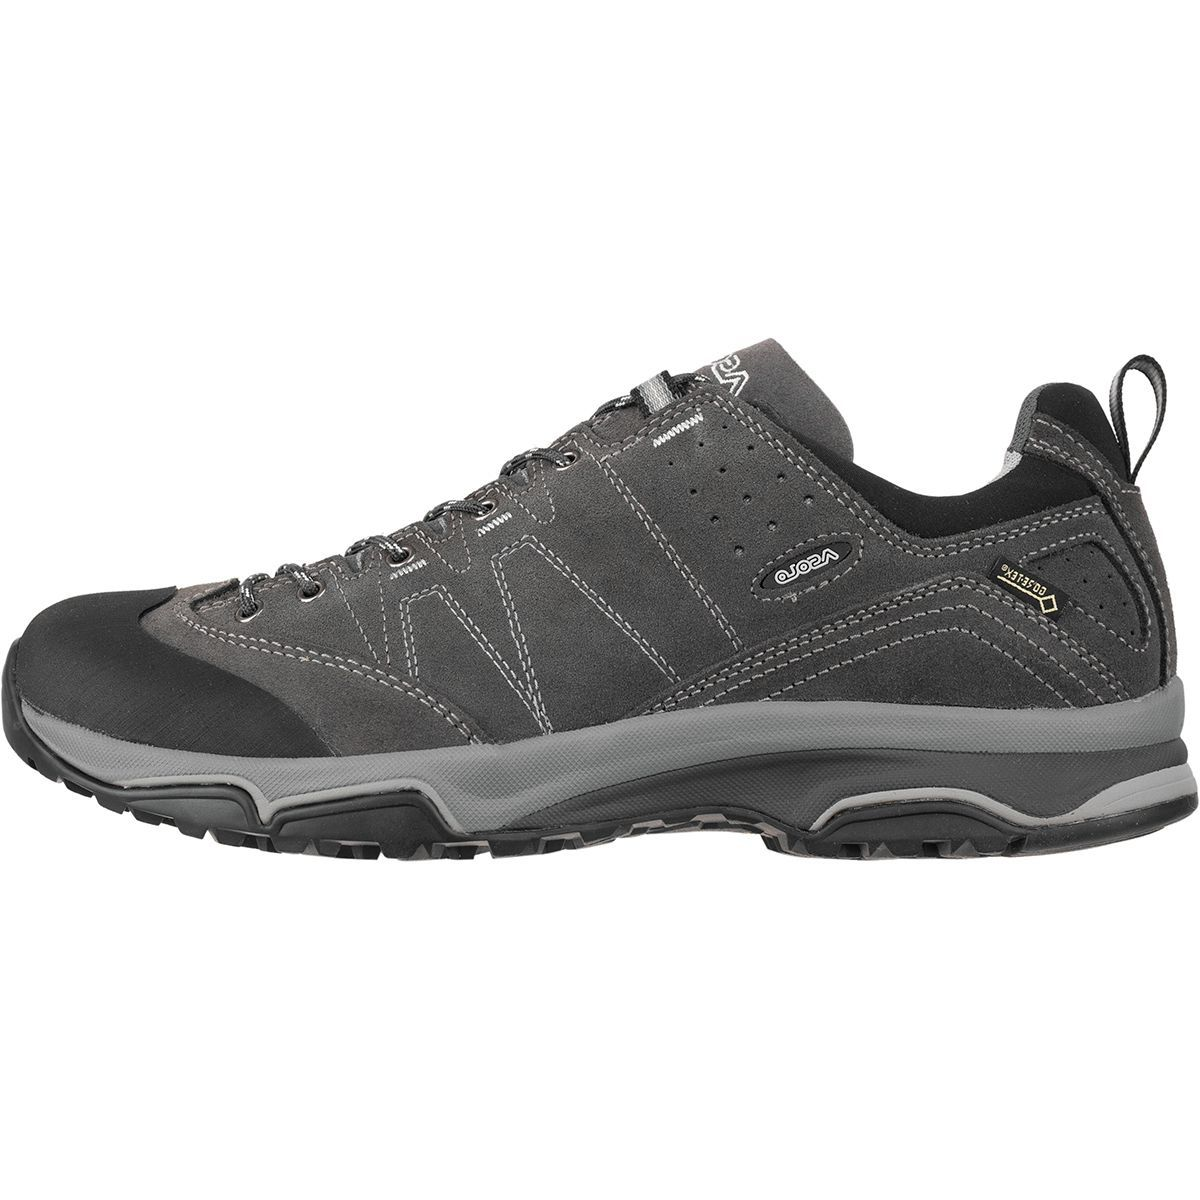 Asolo Agent Evo GV Hiking Shoe - Men's